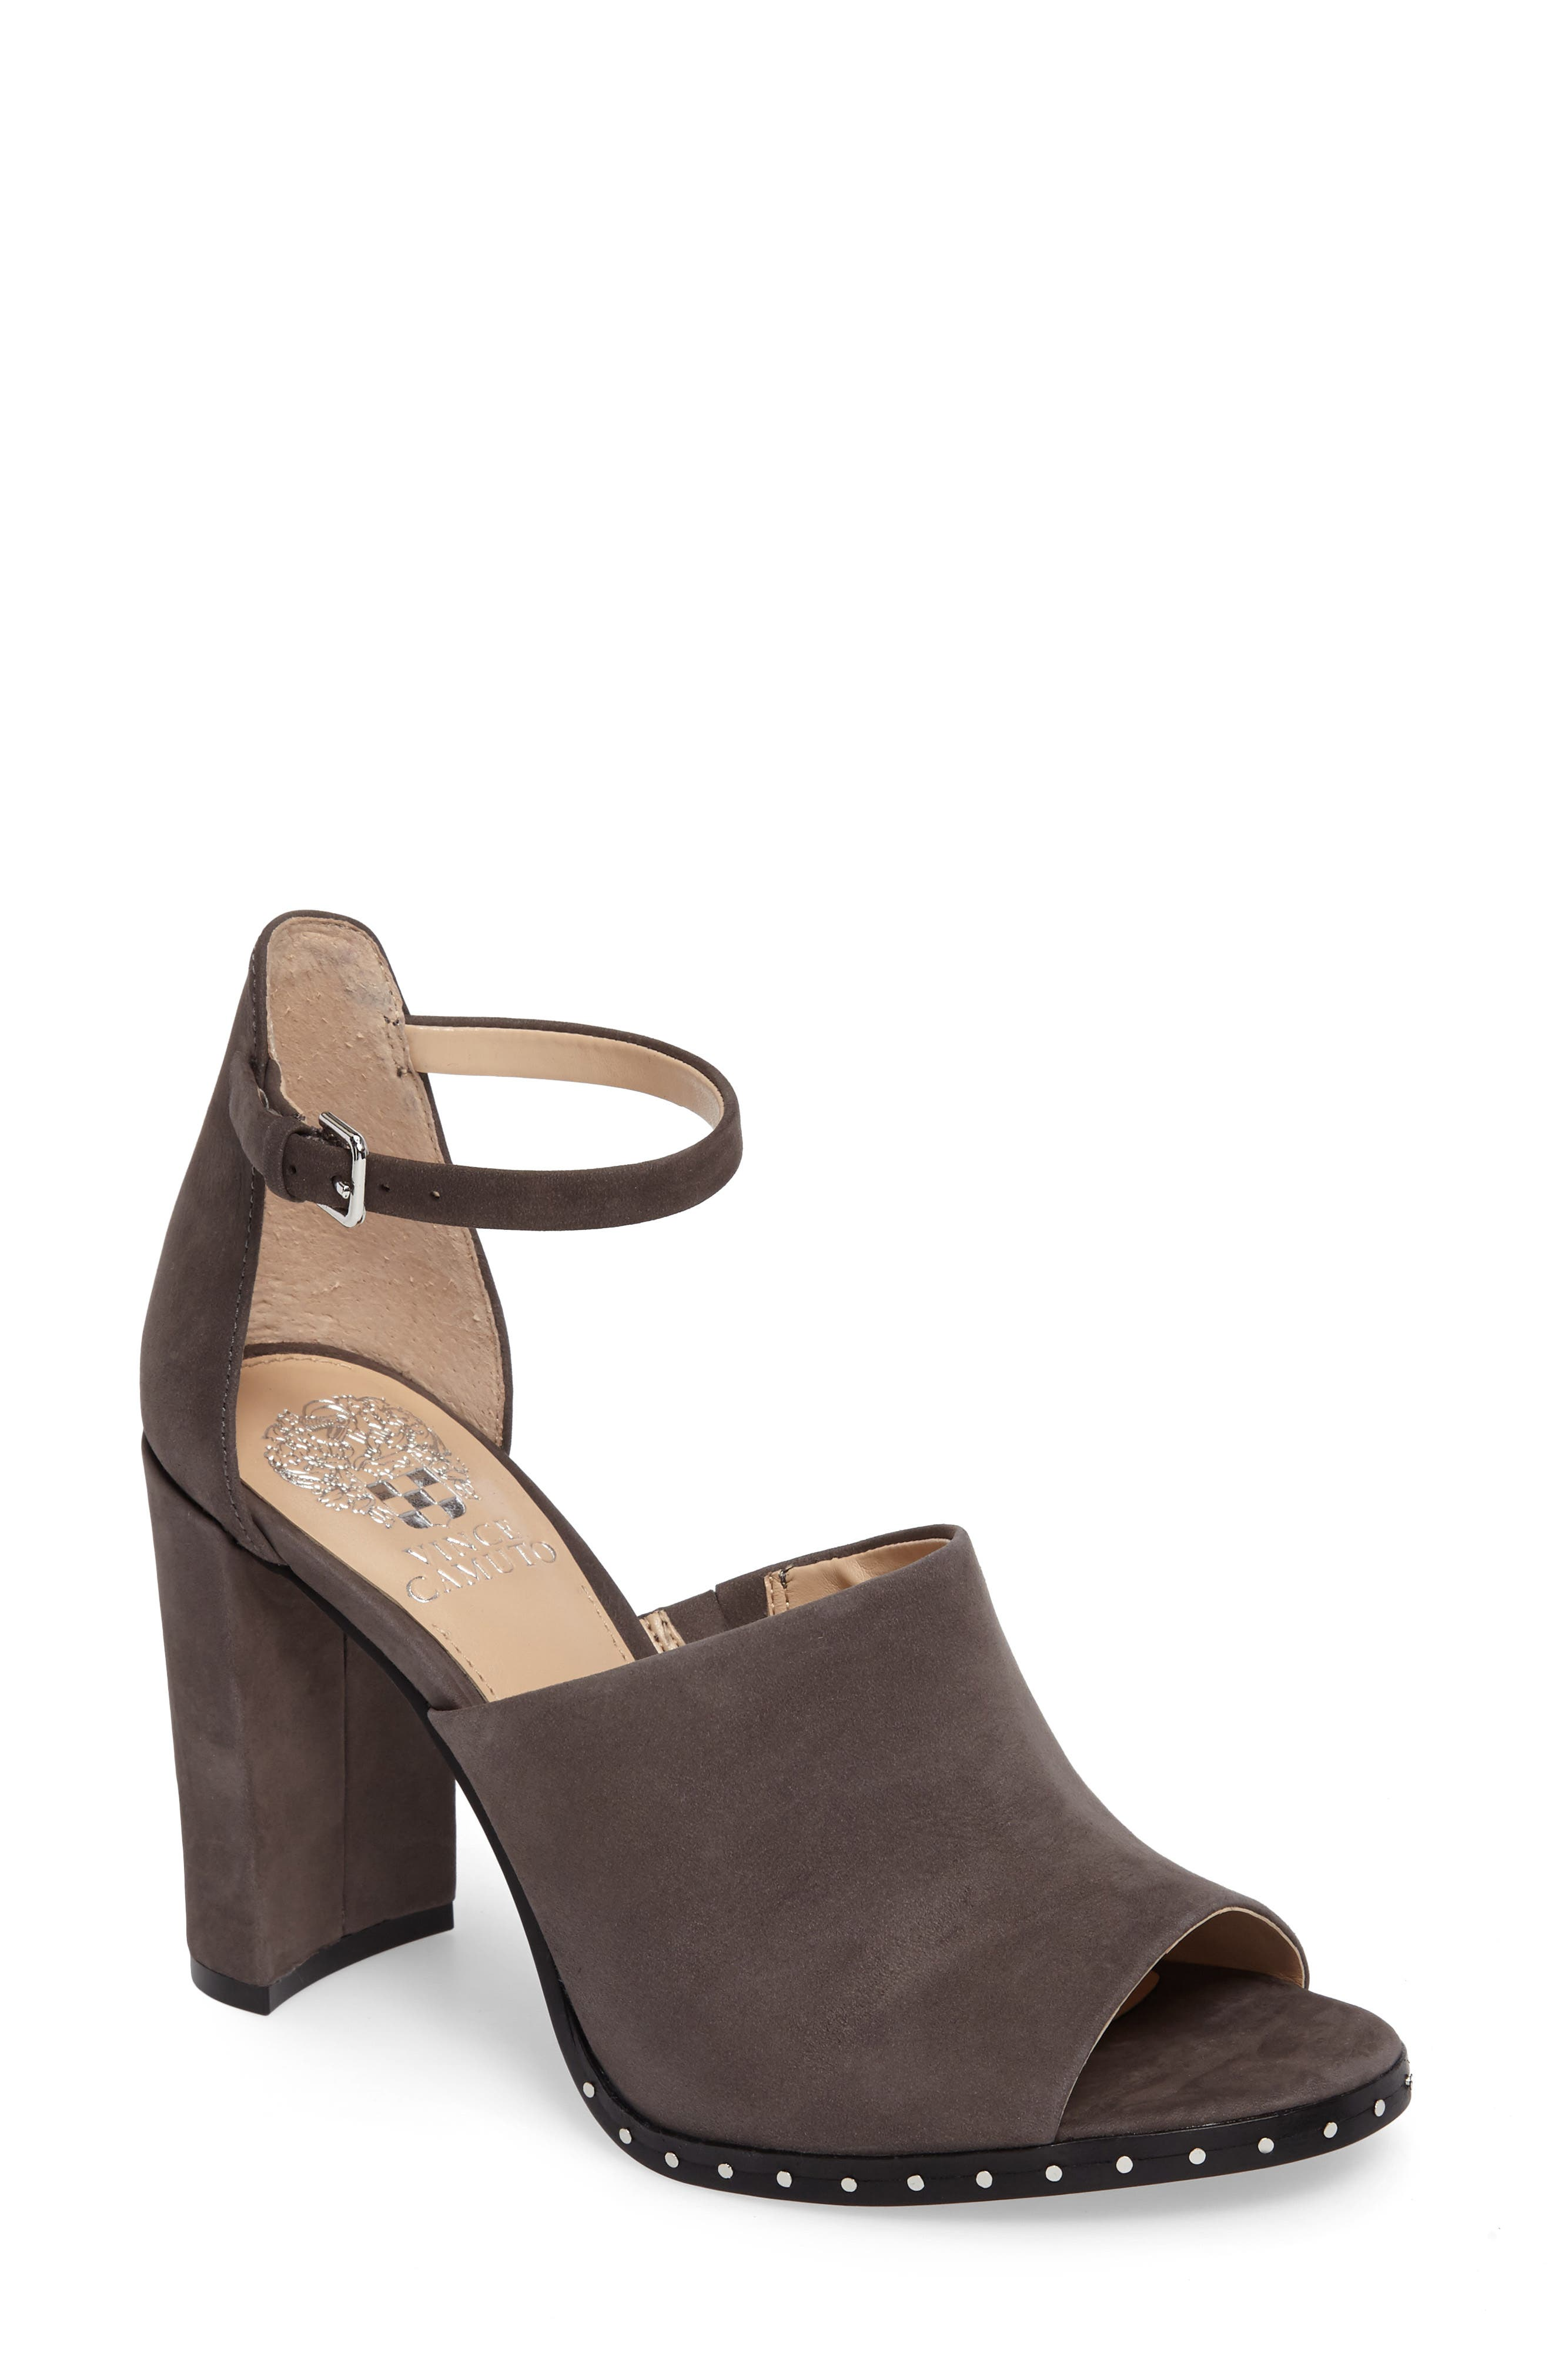 Alternate Image 1 Selected - Vince Camuto Jilley Sandal (Women)